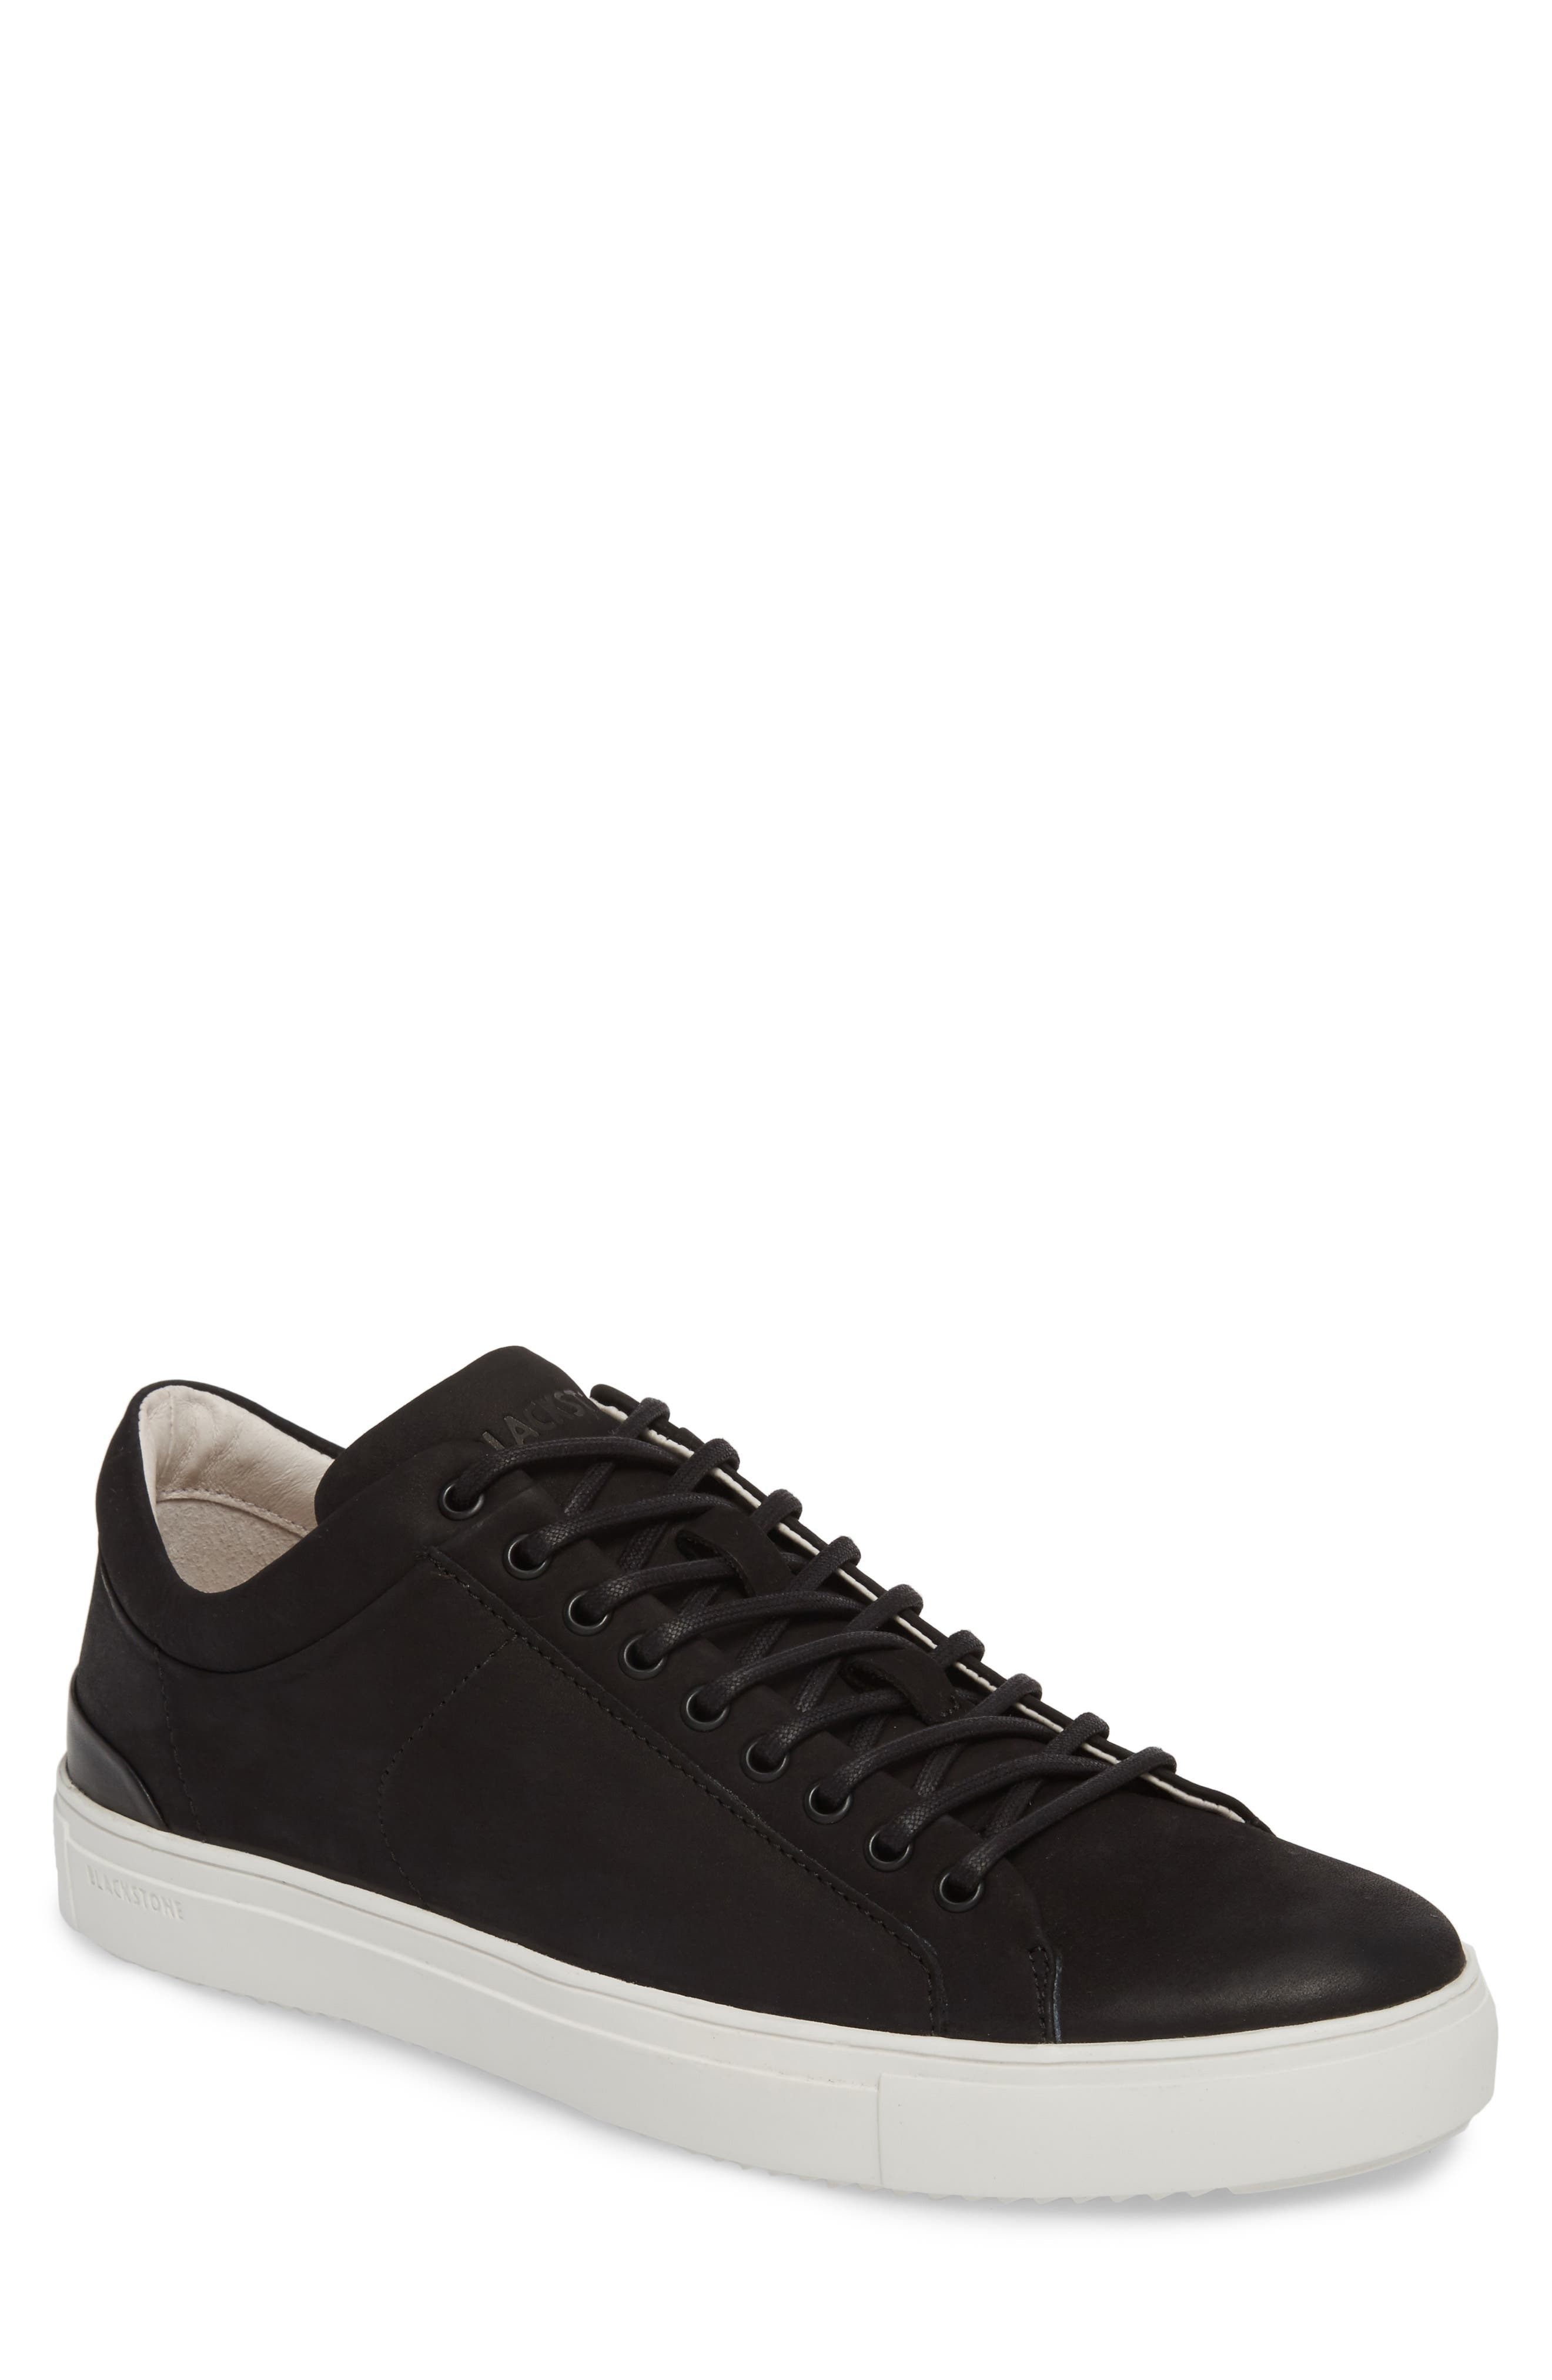 PM56 Low Top Sneaker,                             Main thumbnail 1, color,                             BLACK LEATHER